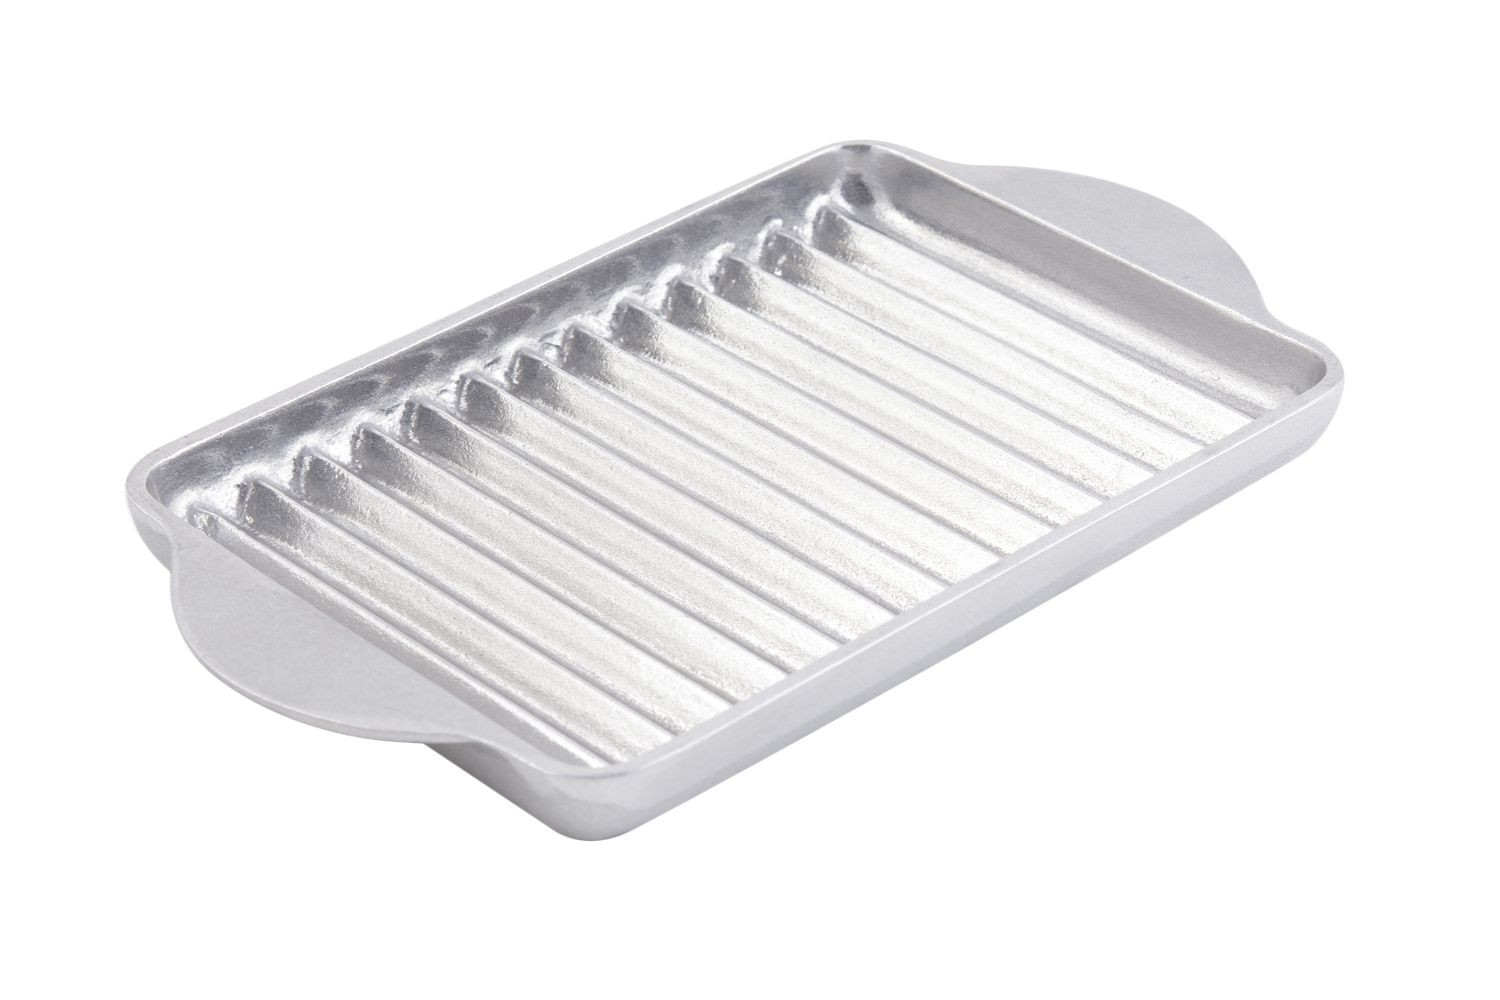 Grill Tray Bon Chef 2081p Rectangular Grill Tray Pewter Glo 5 1 2 Quot X